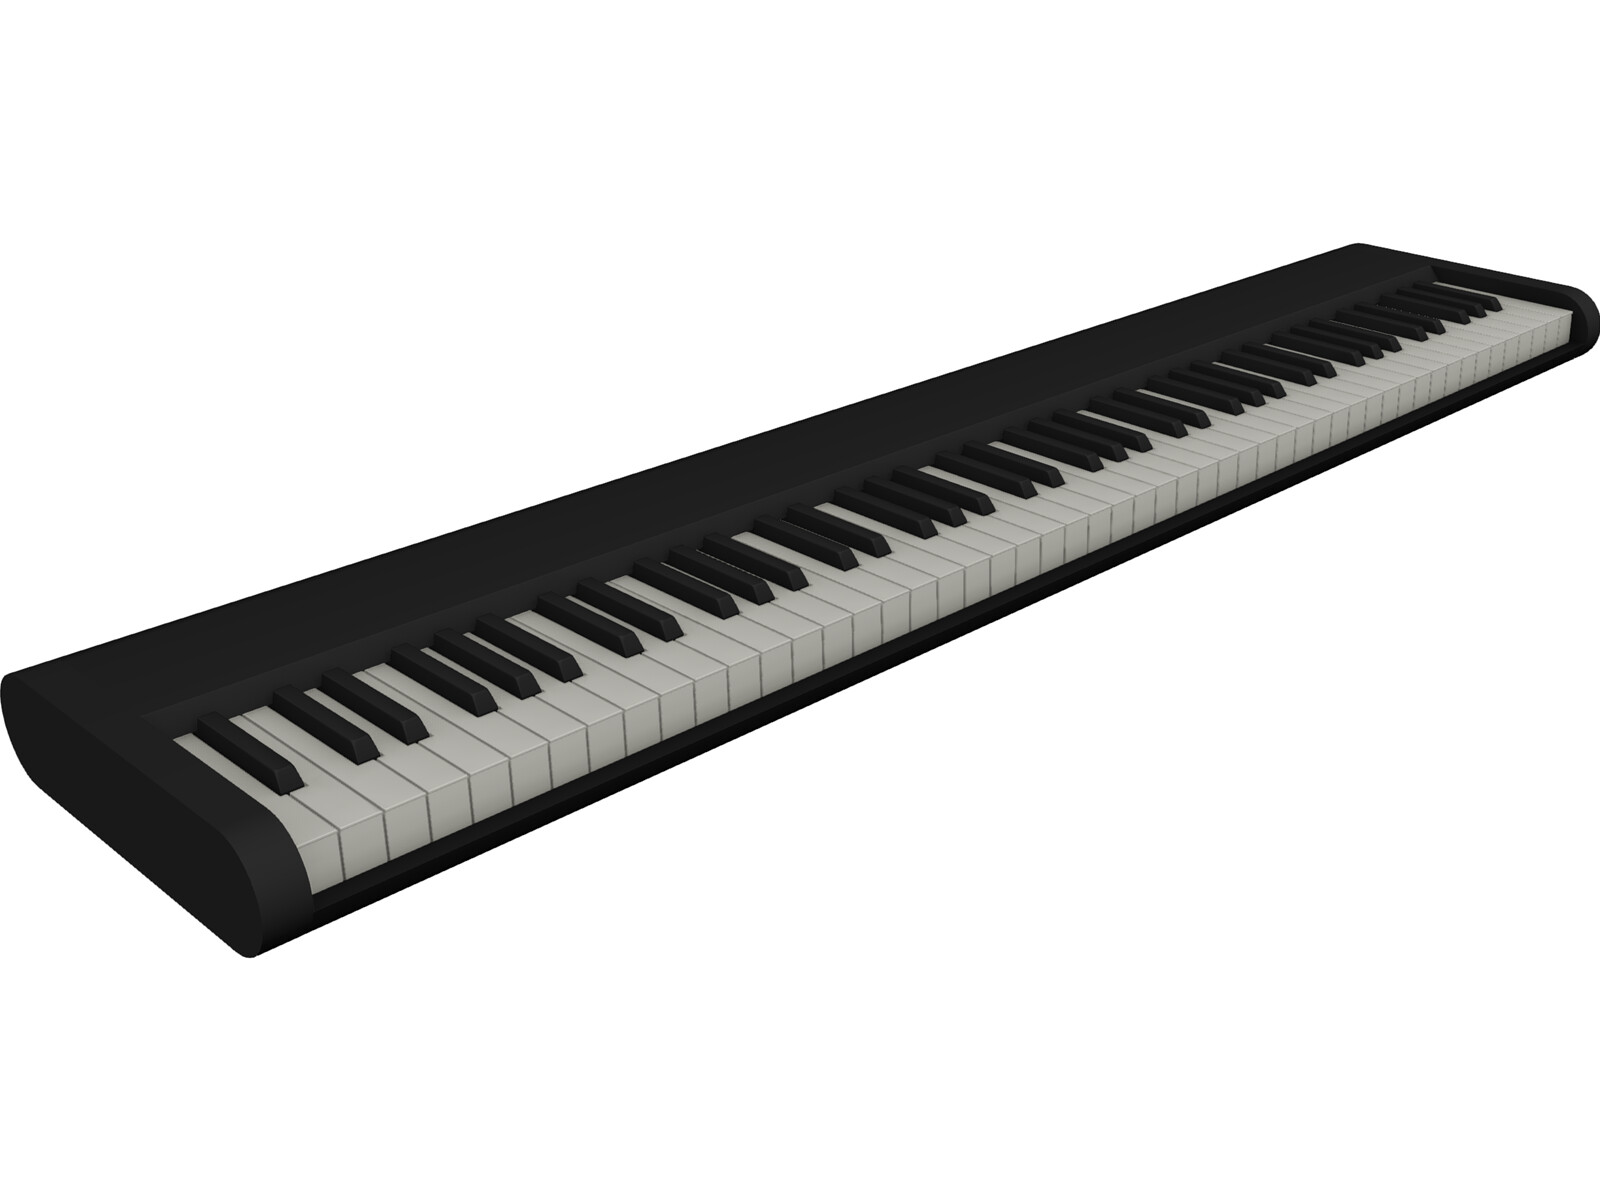 M-Audio Keyboard 3D Model